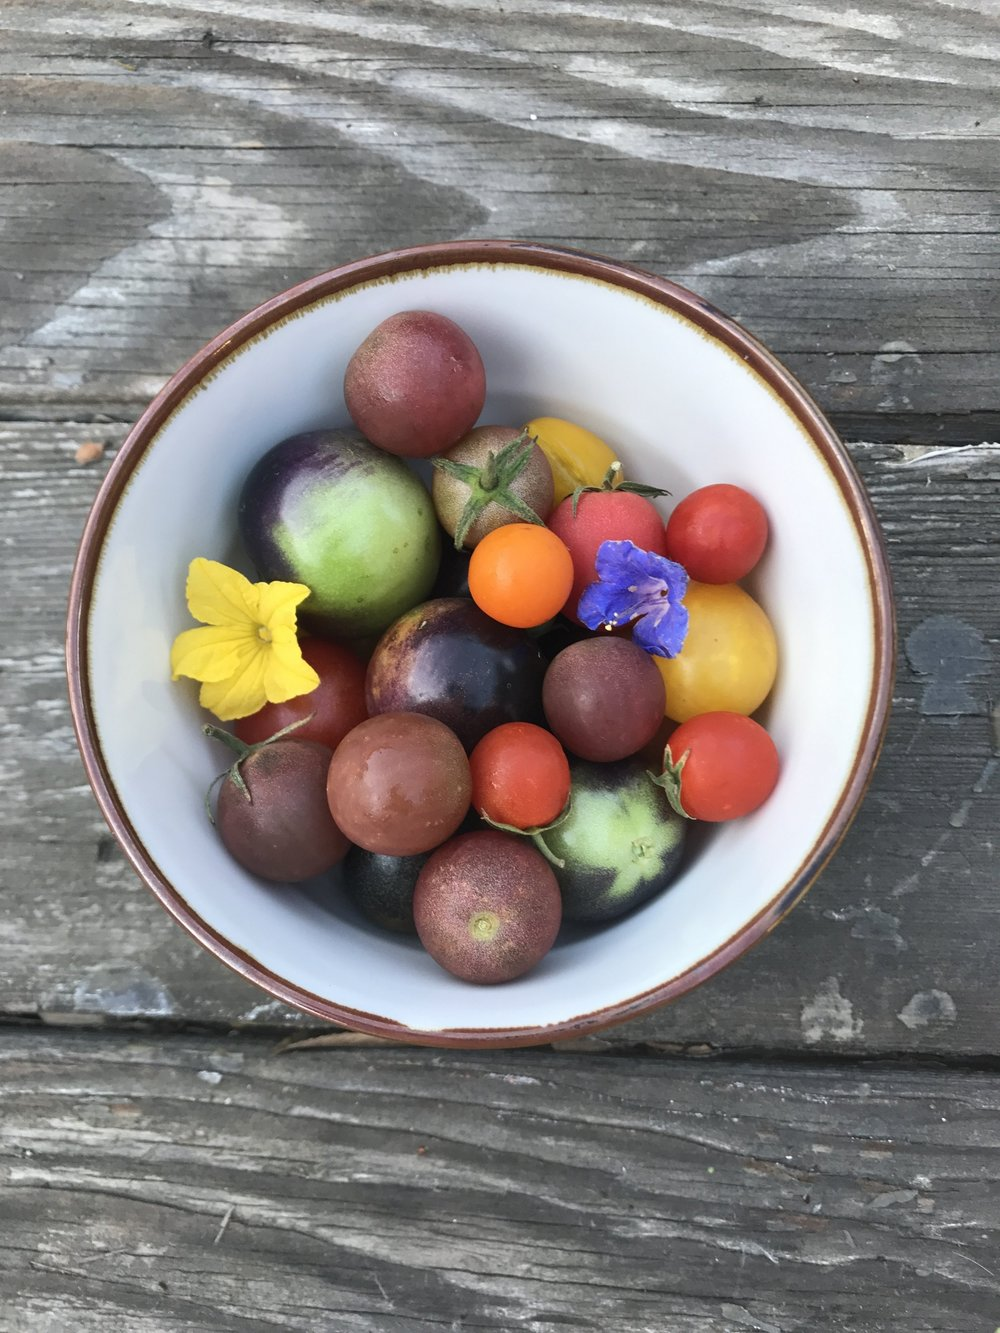 Tomatoes and edible flowers in a ceramic bowl